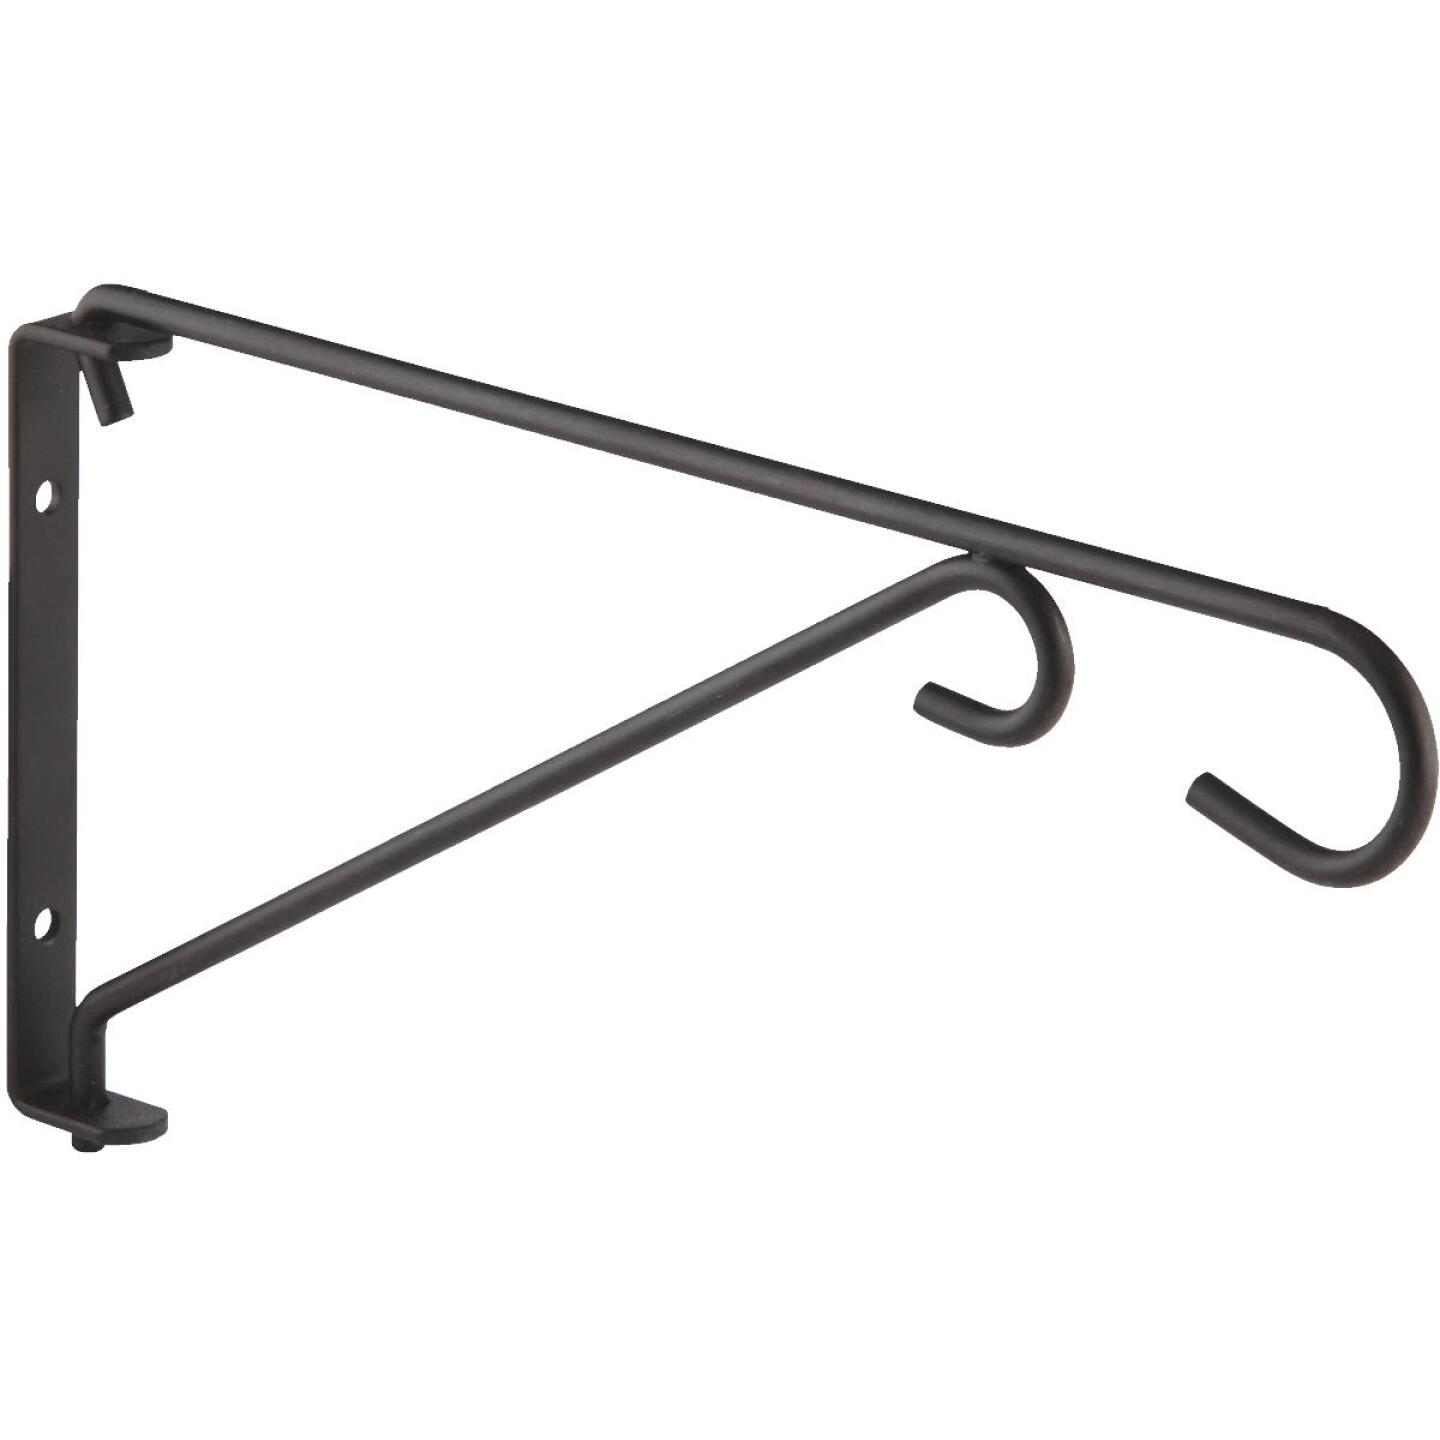 National 9 In. Black Steel Swivel Hanging Plant Bracket Image 4